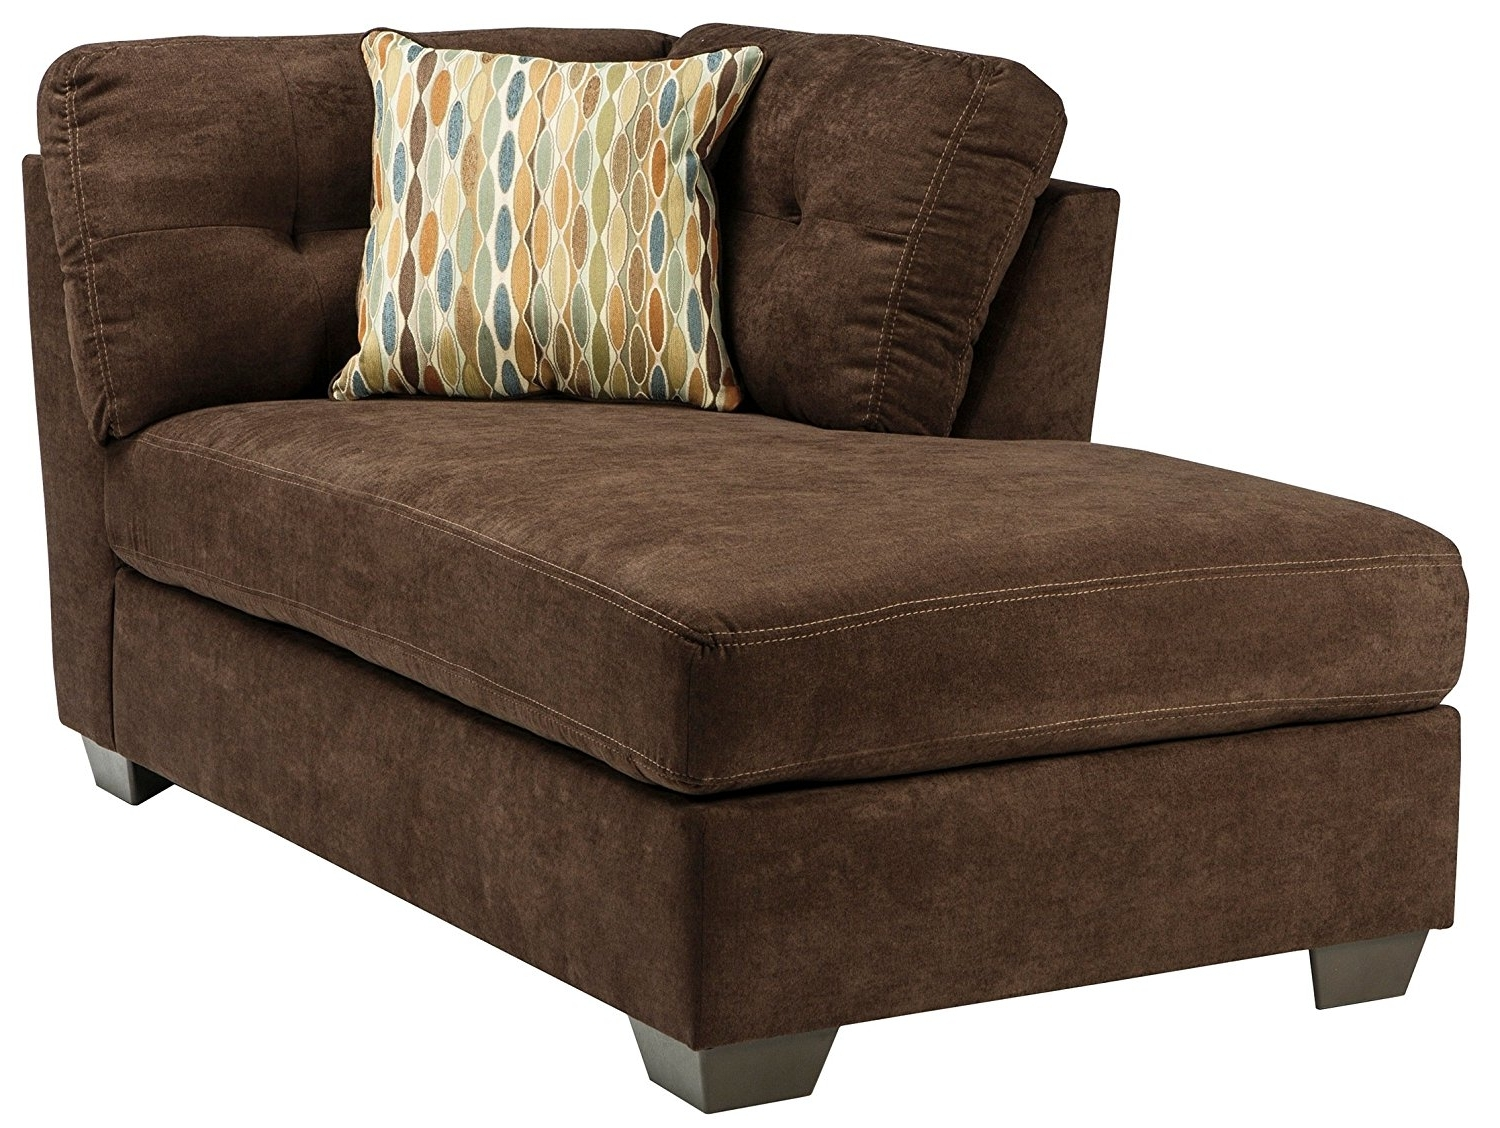 Amazon: Ashley Delta City Left Corner Chaise Lounge In Regarding Well Known Ashley Furniture Chaise Lounge Chairs (View 1 of 15)